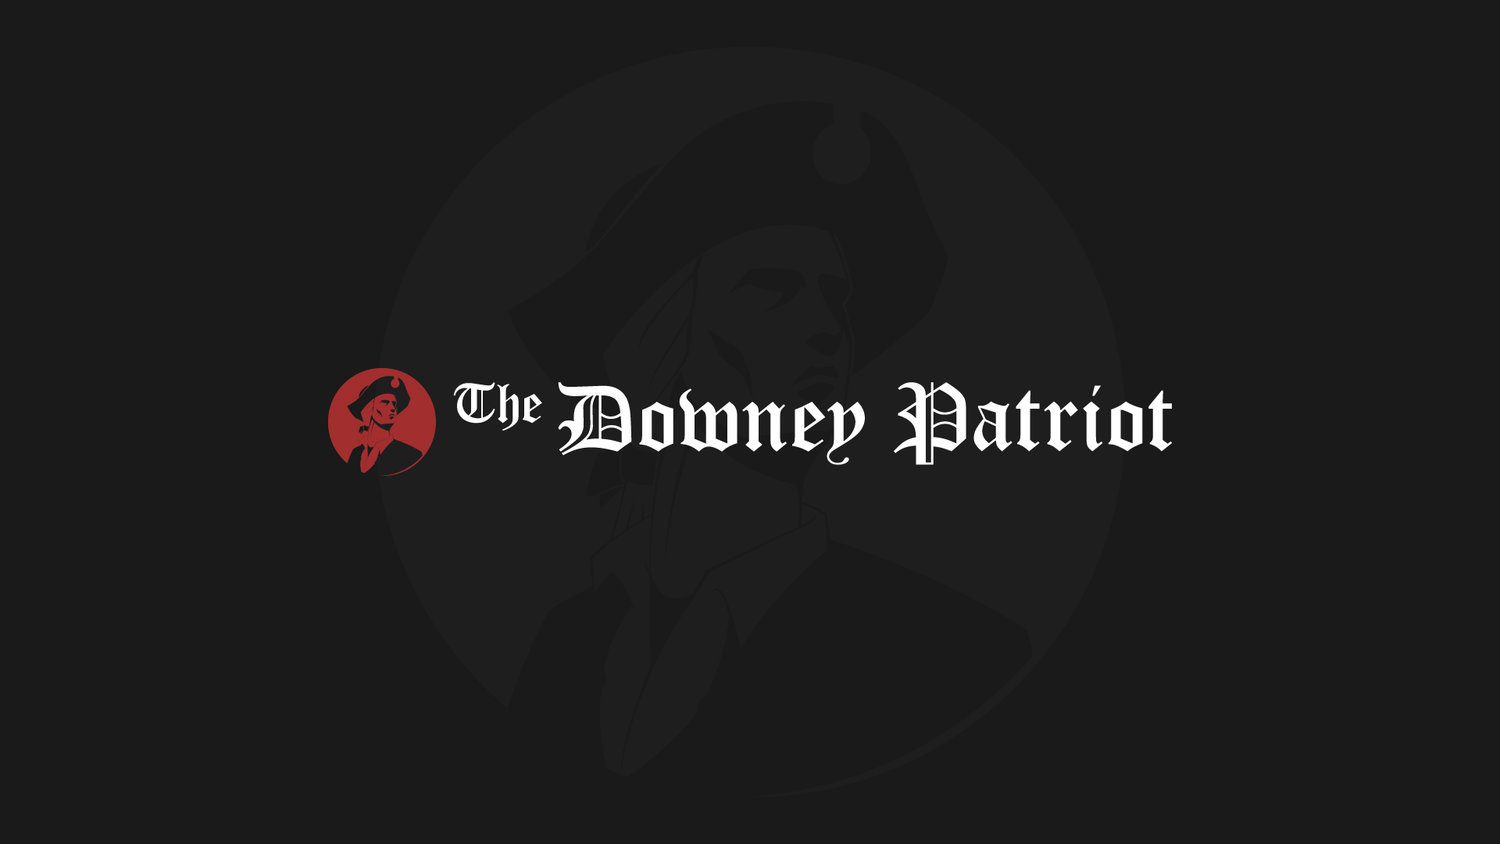 The Downey Patriot